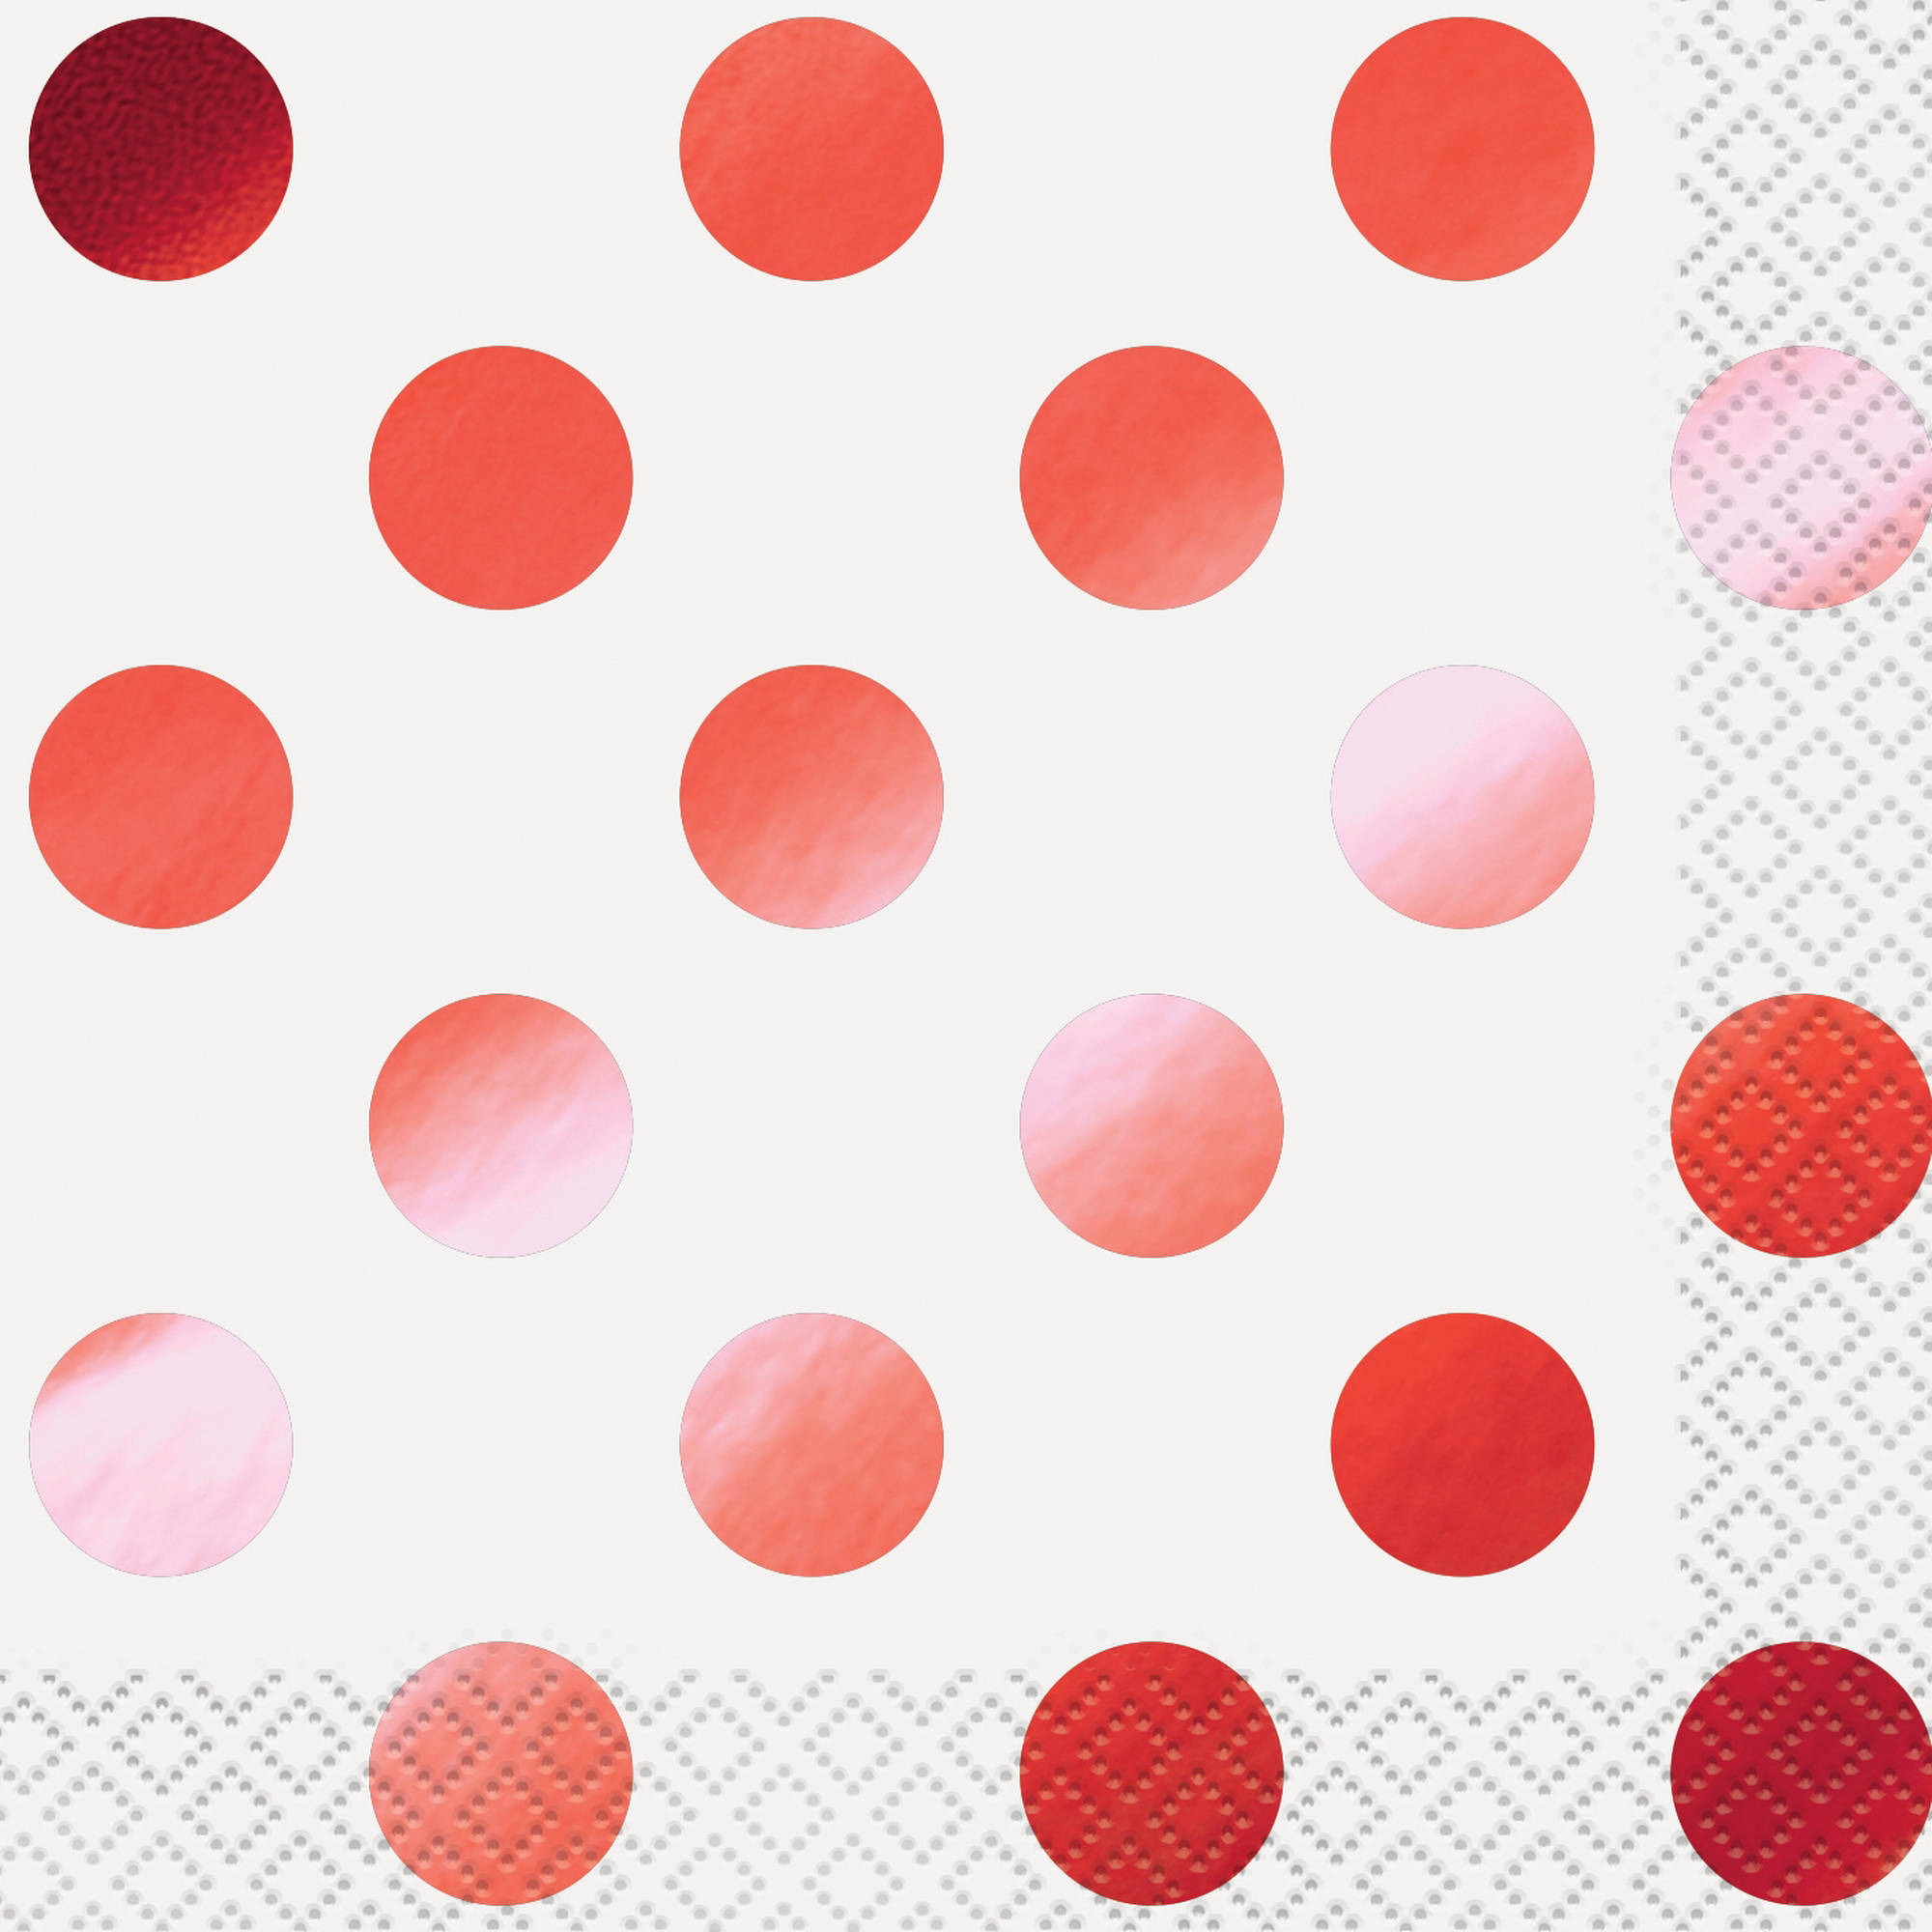 Foil Polka Dot Paper Beverage Napkins, Gold, 16ct